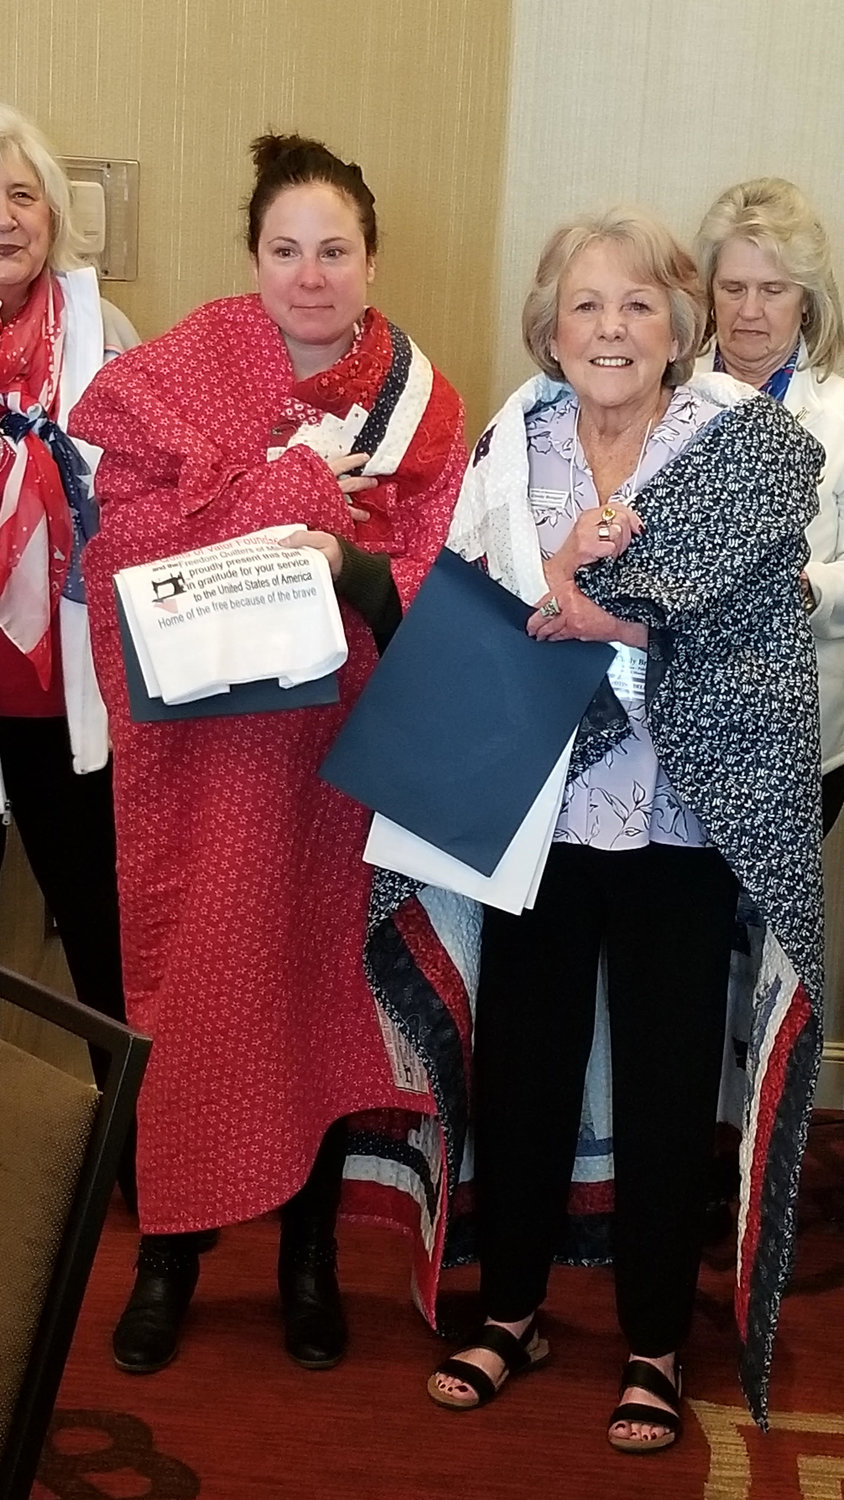 GFWC Maryellen Founds and Cindy Brogan Quilts of Valor